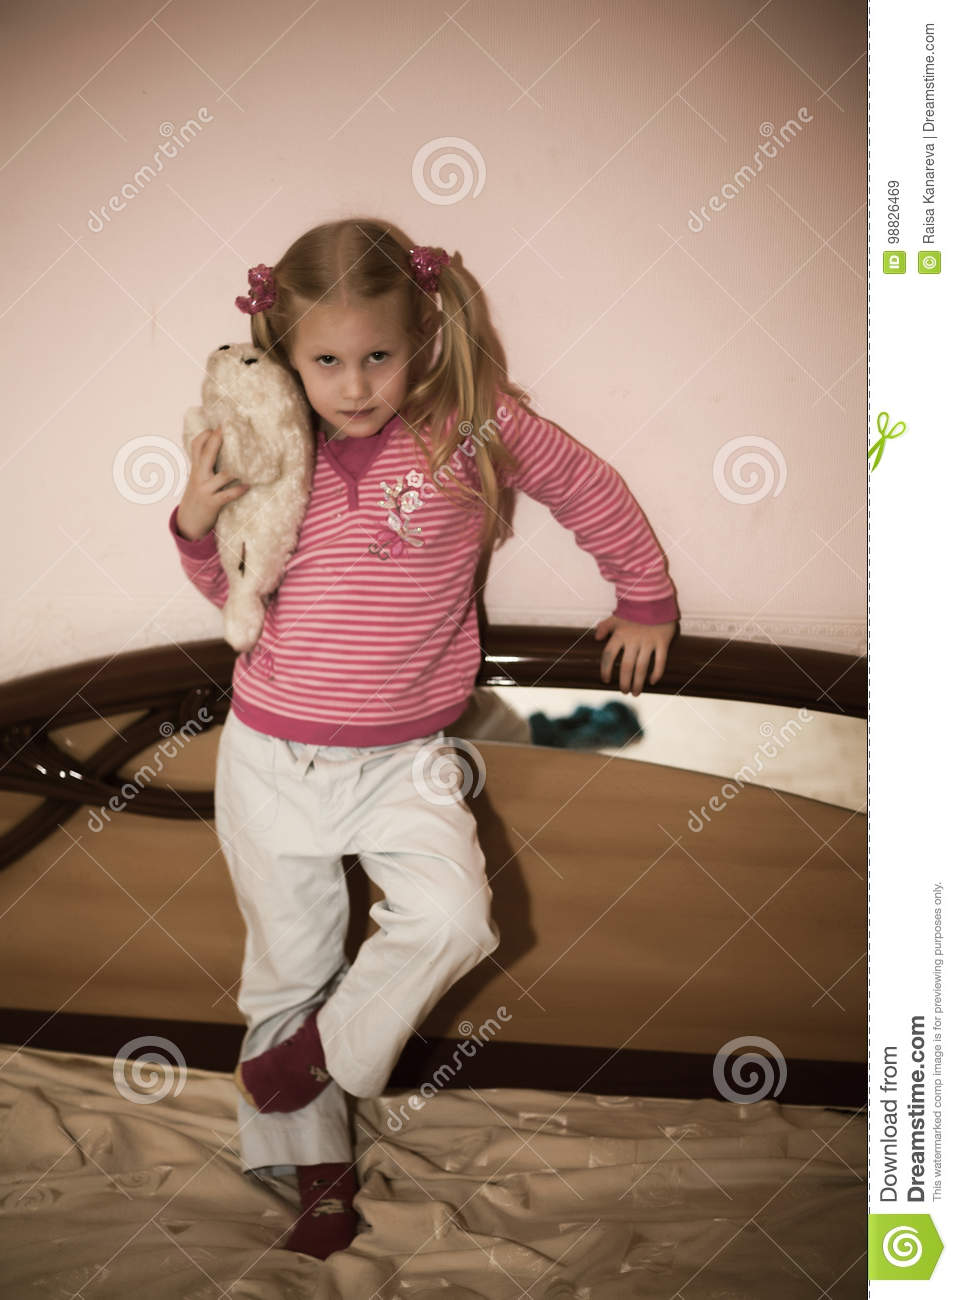 Blonde girl and toy